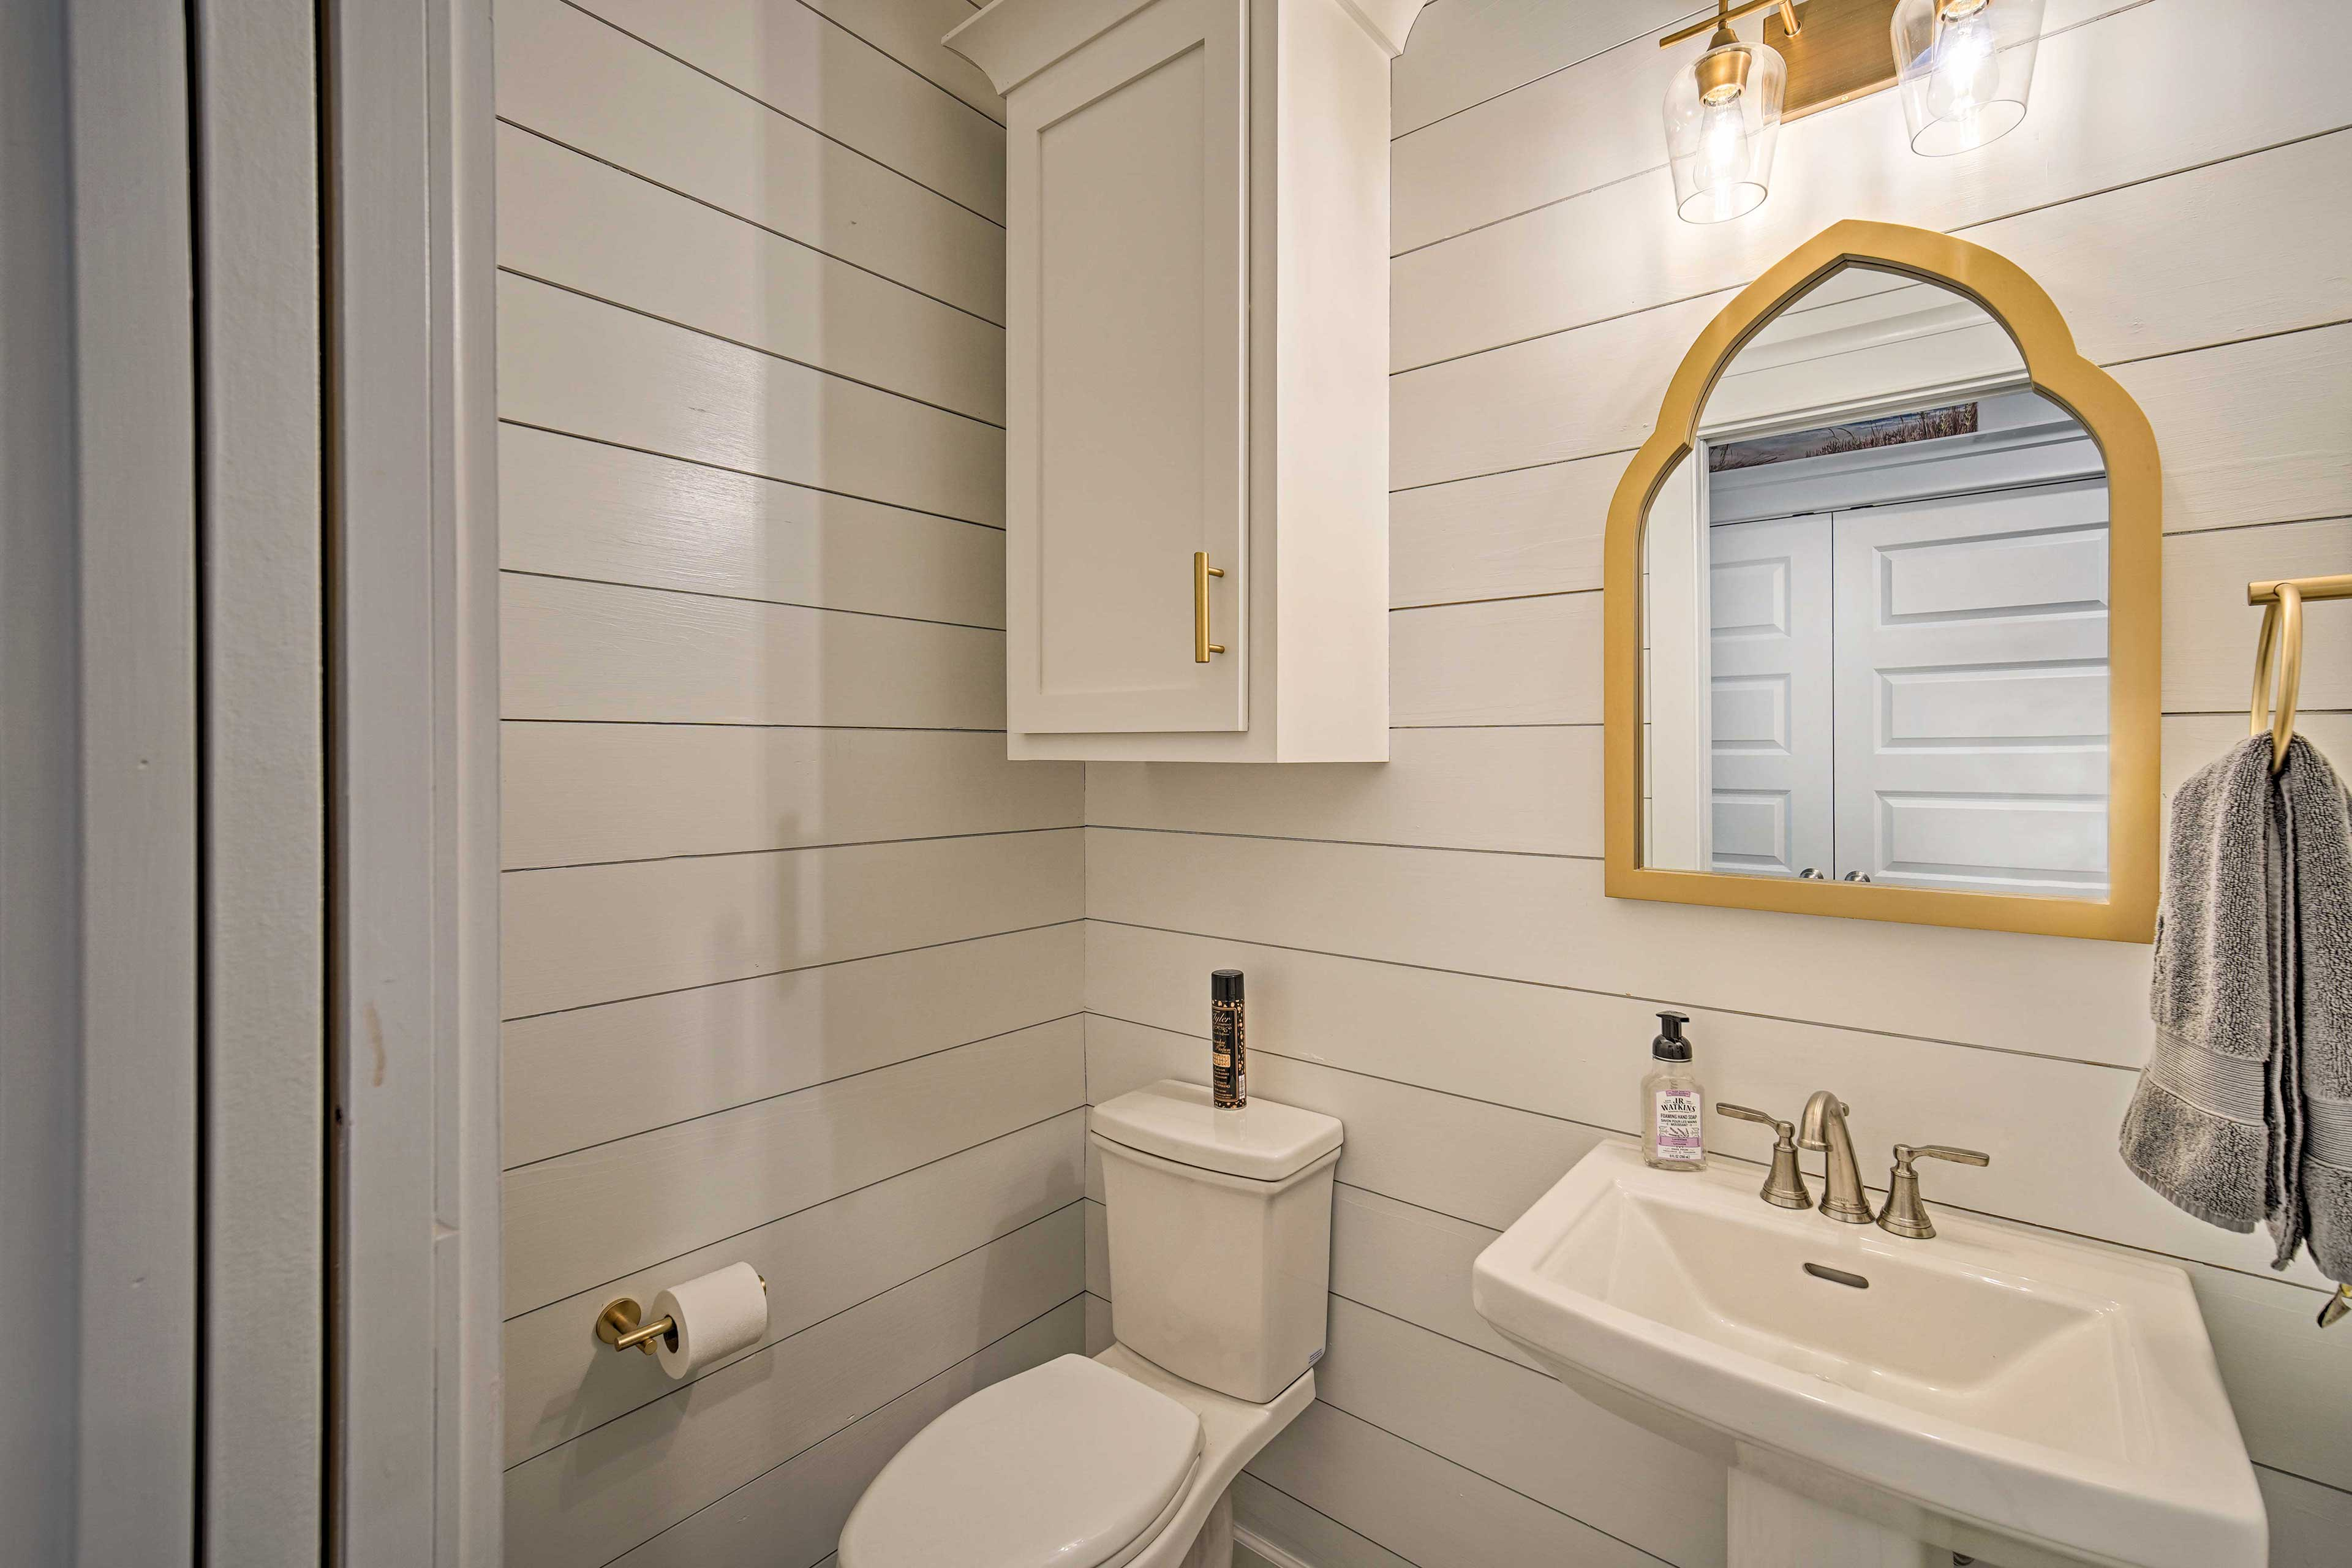 Along with a half bath, the home also offers a washer and dryer.